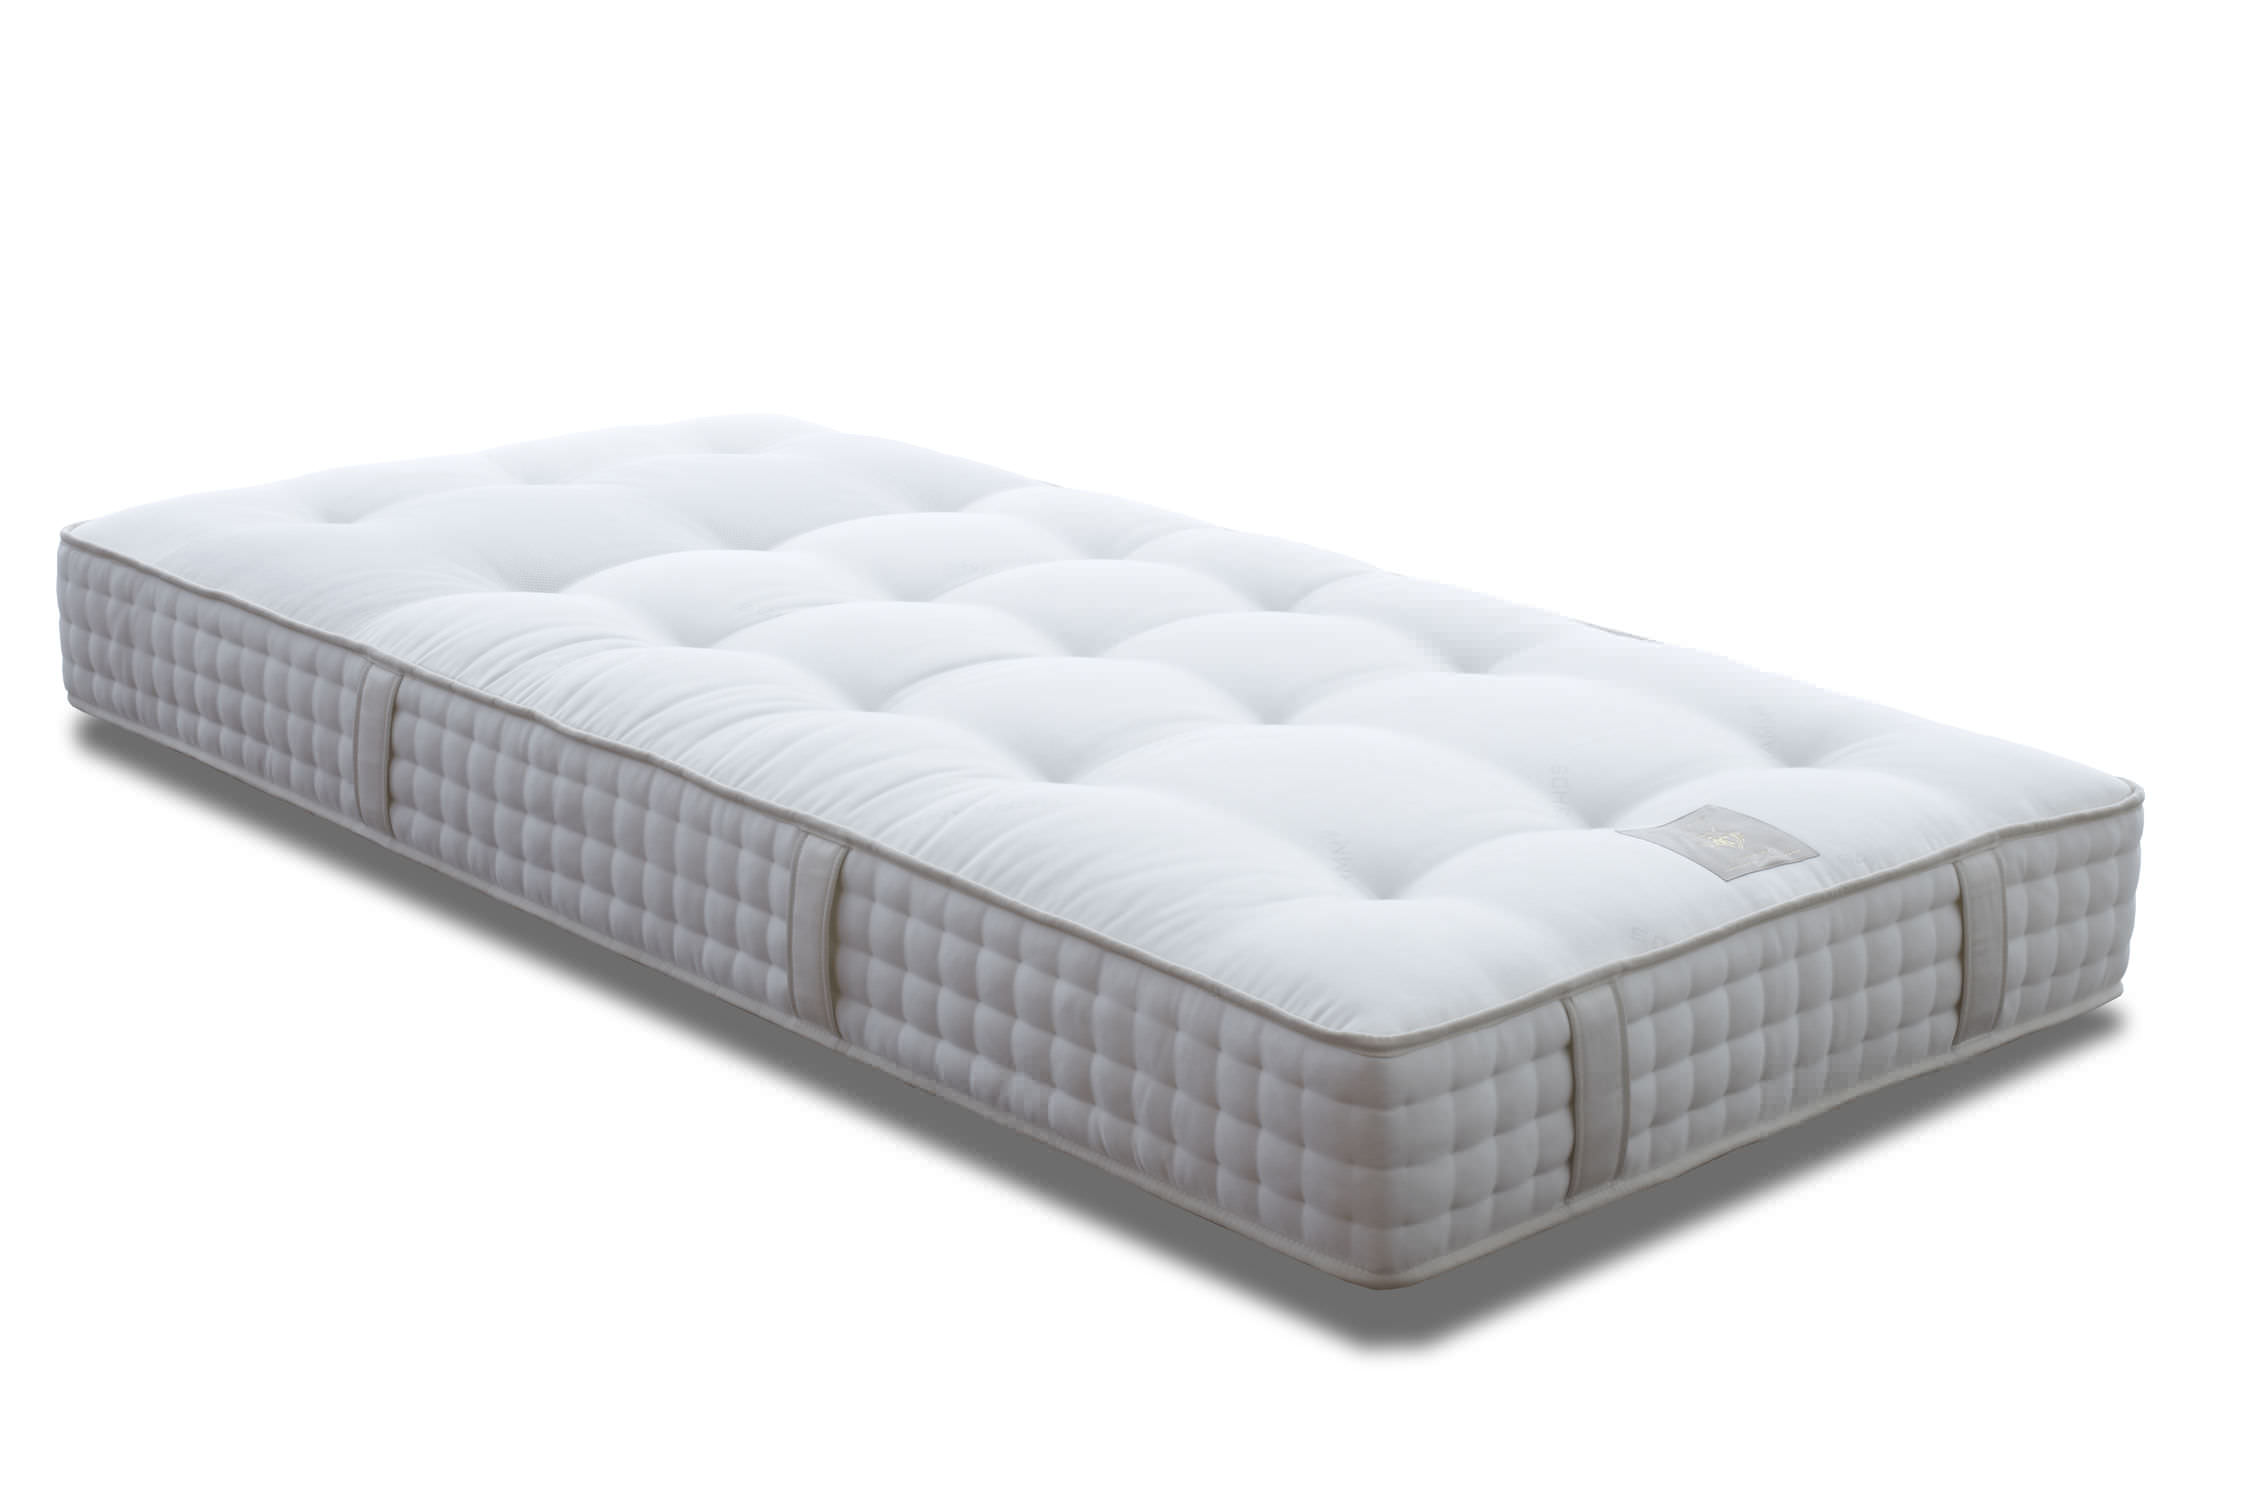 Single mattress pocket spring 100x200 cm residential